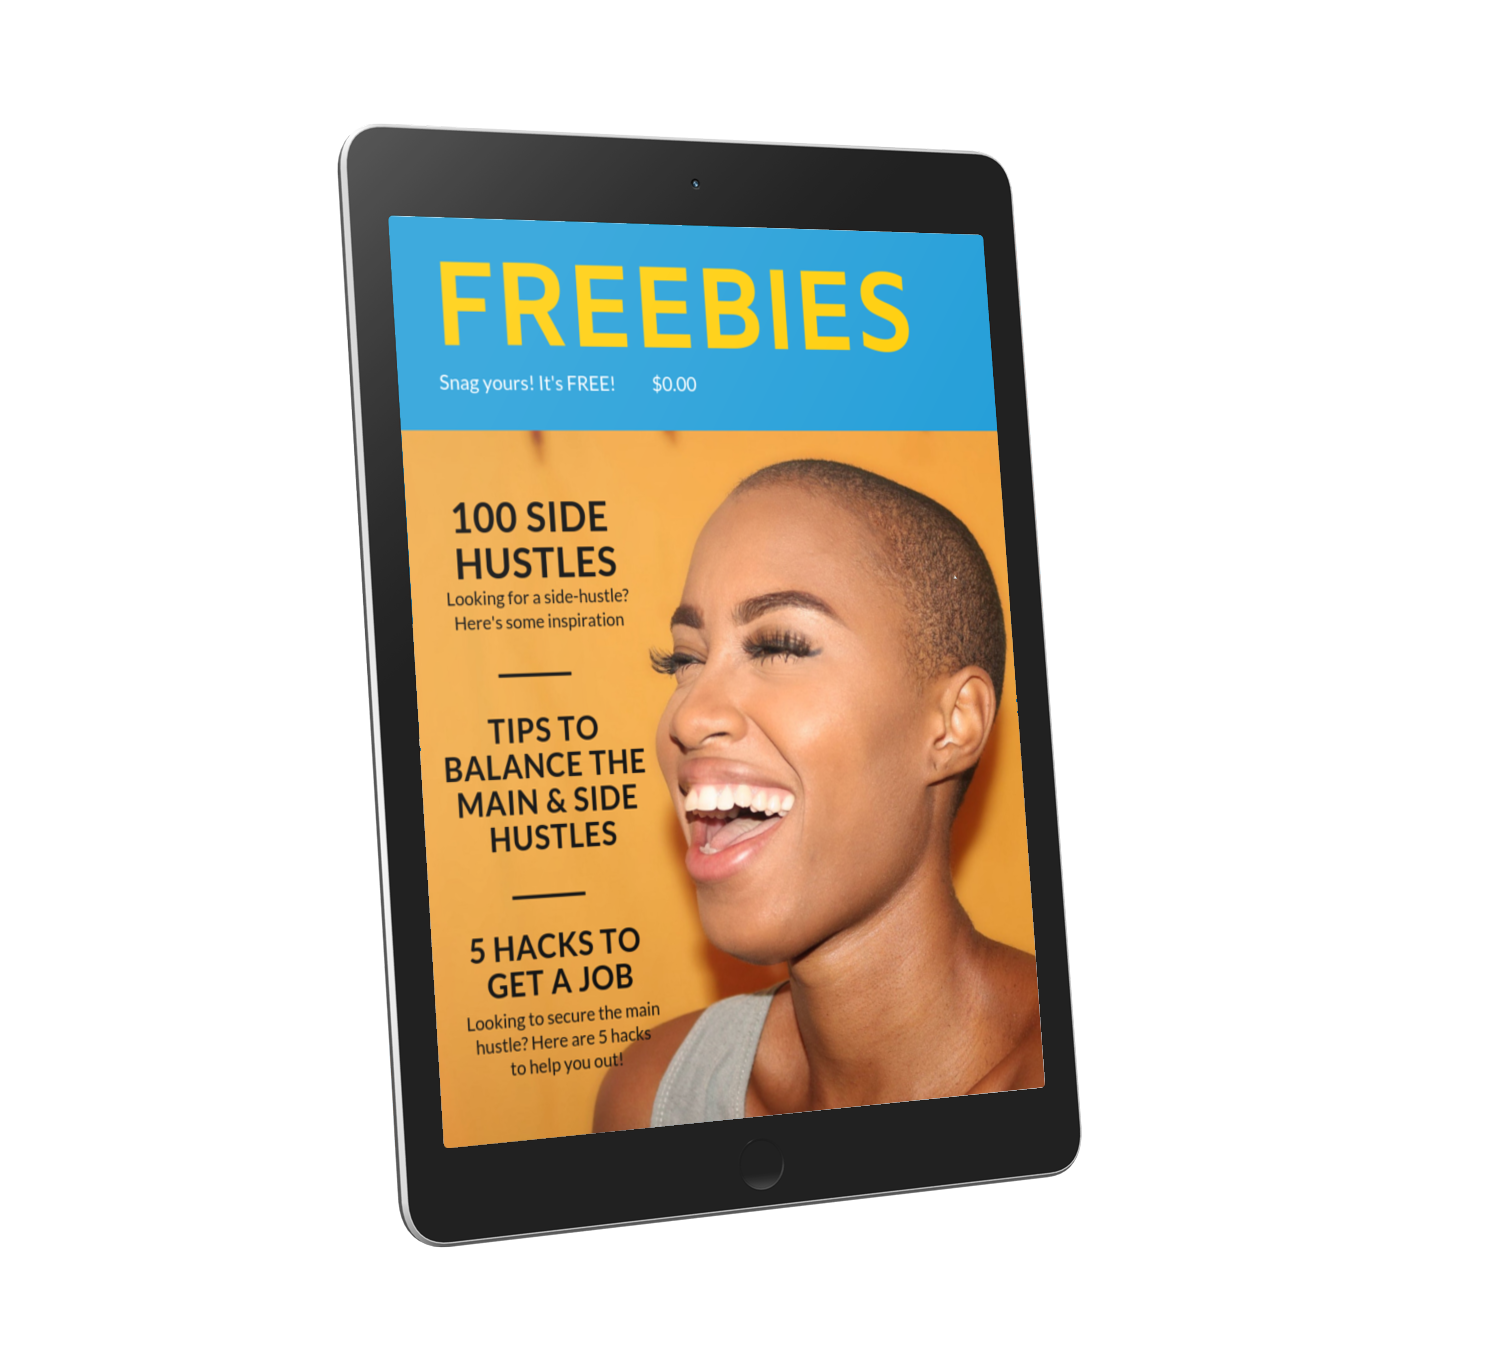 don't wait! start your hustle now…here's help! - Below are a few resources to help you get started with your main and side hustlesPlease note: Hustle hours are only available to young entrepreneurs (ages 16 - 30) and are unavailable to anyone who takes advantage of the free consultation.FREE: 100 Side-Hustles to Inspire YouFREE: The Ultimate Side-Hustler's Guide to help you balance both hustlesFREE: 5 Hacks to Get the Job You Want